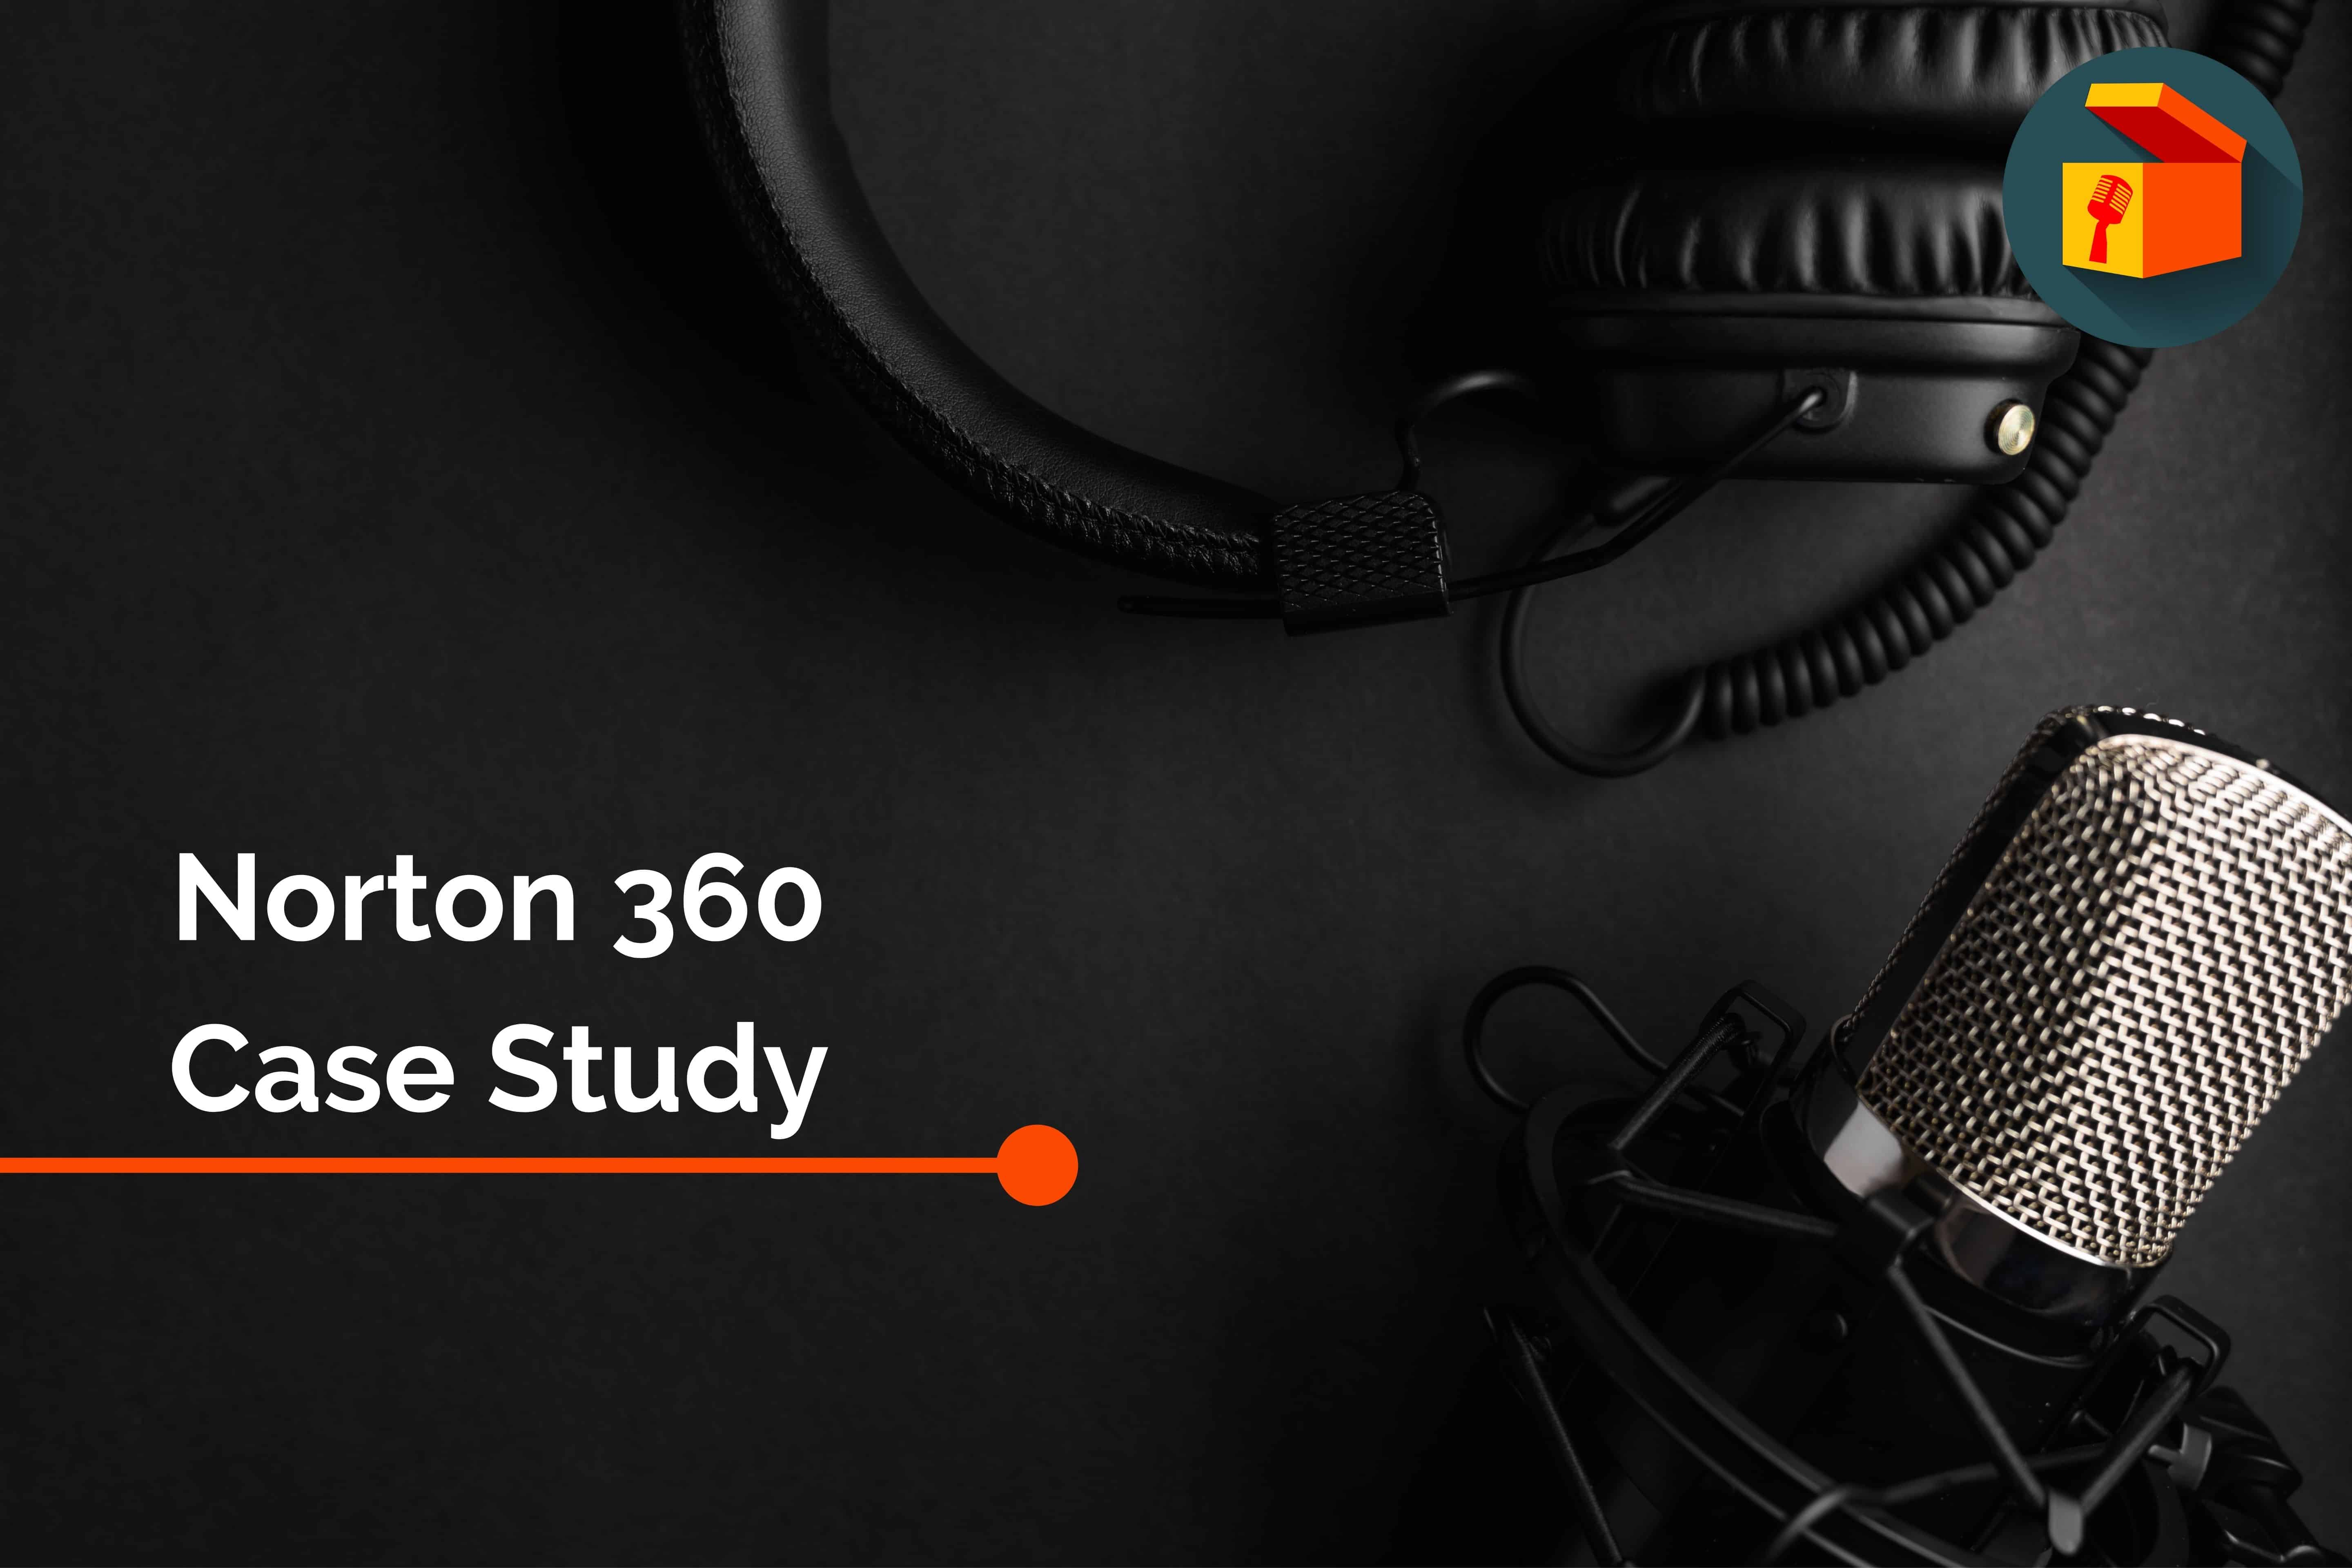 Recording Microphone and headset for Norton 360 case study